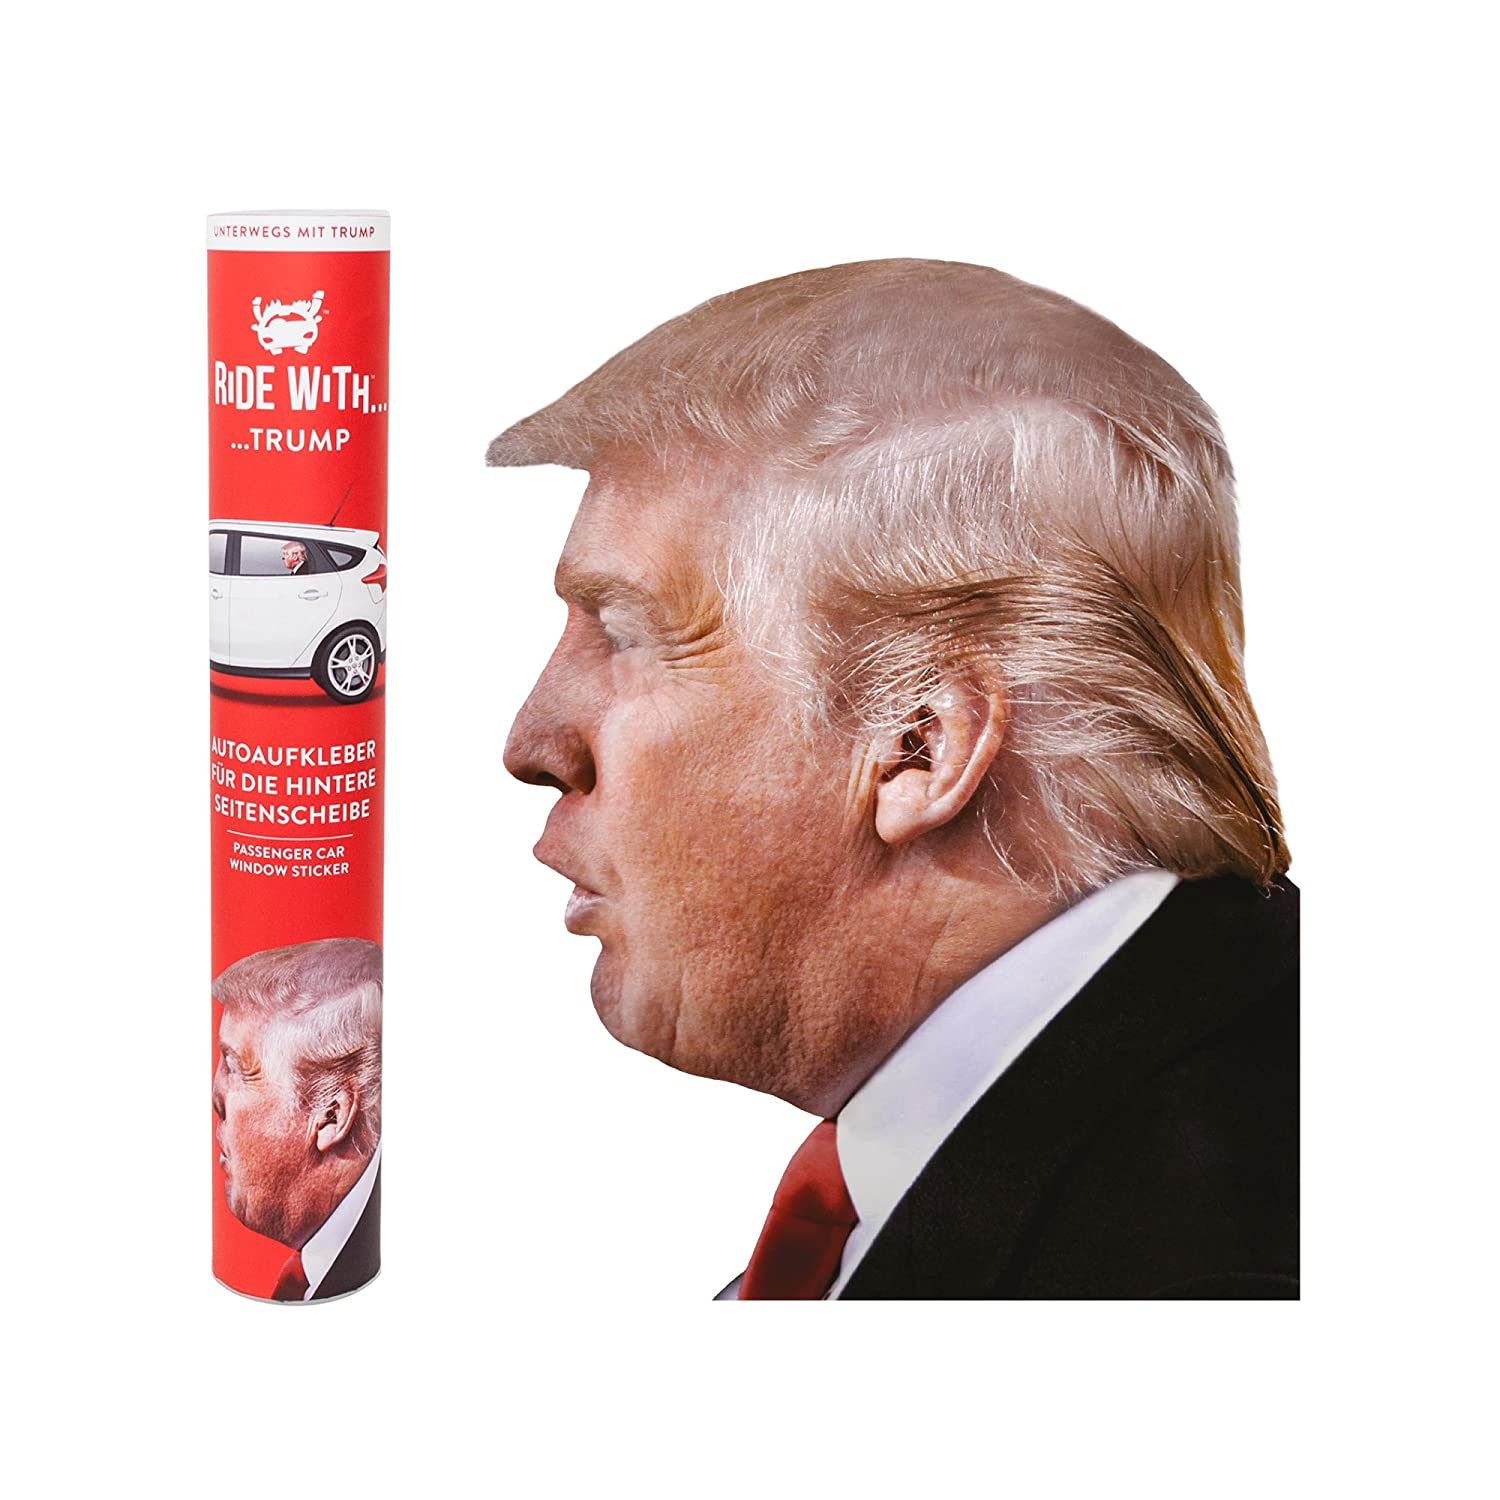 THUMBS UP Thumbsup UK Ride with Trump Left Car Window Sticker RW TRMPLHD